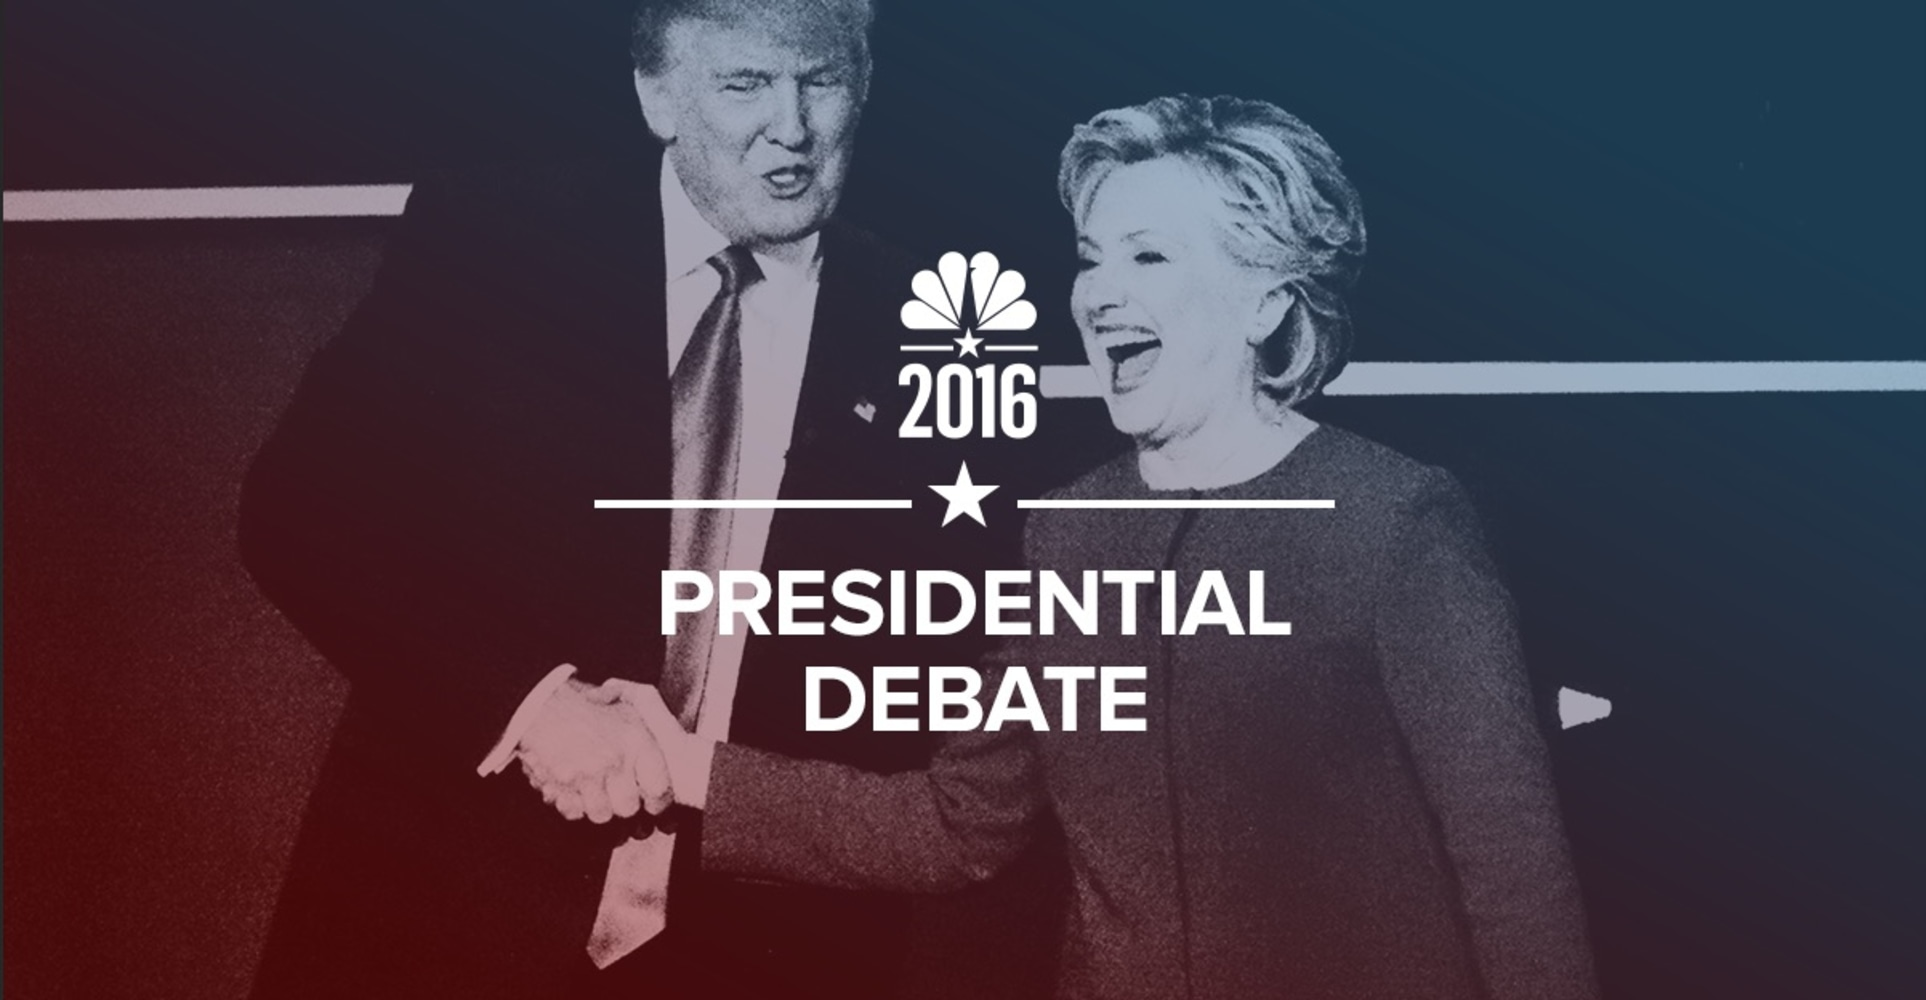 The 2016 Presidential Debate Nbc News